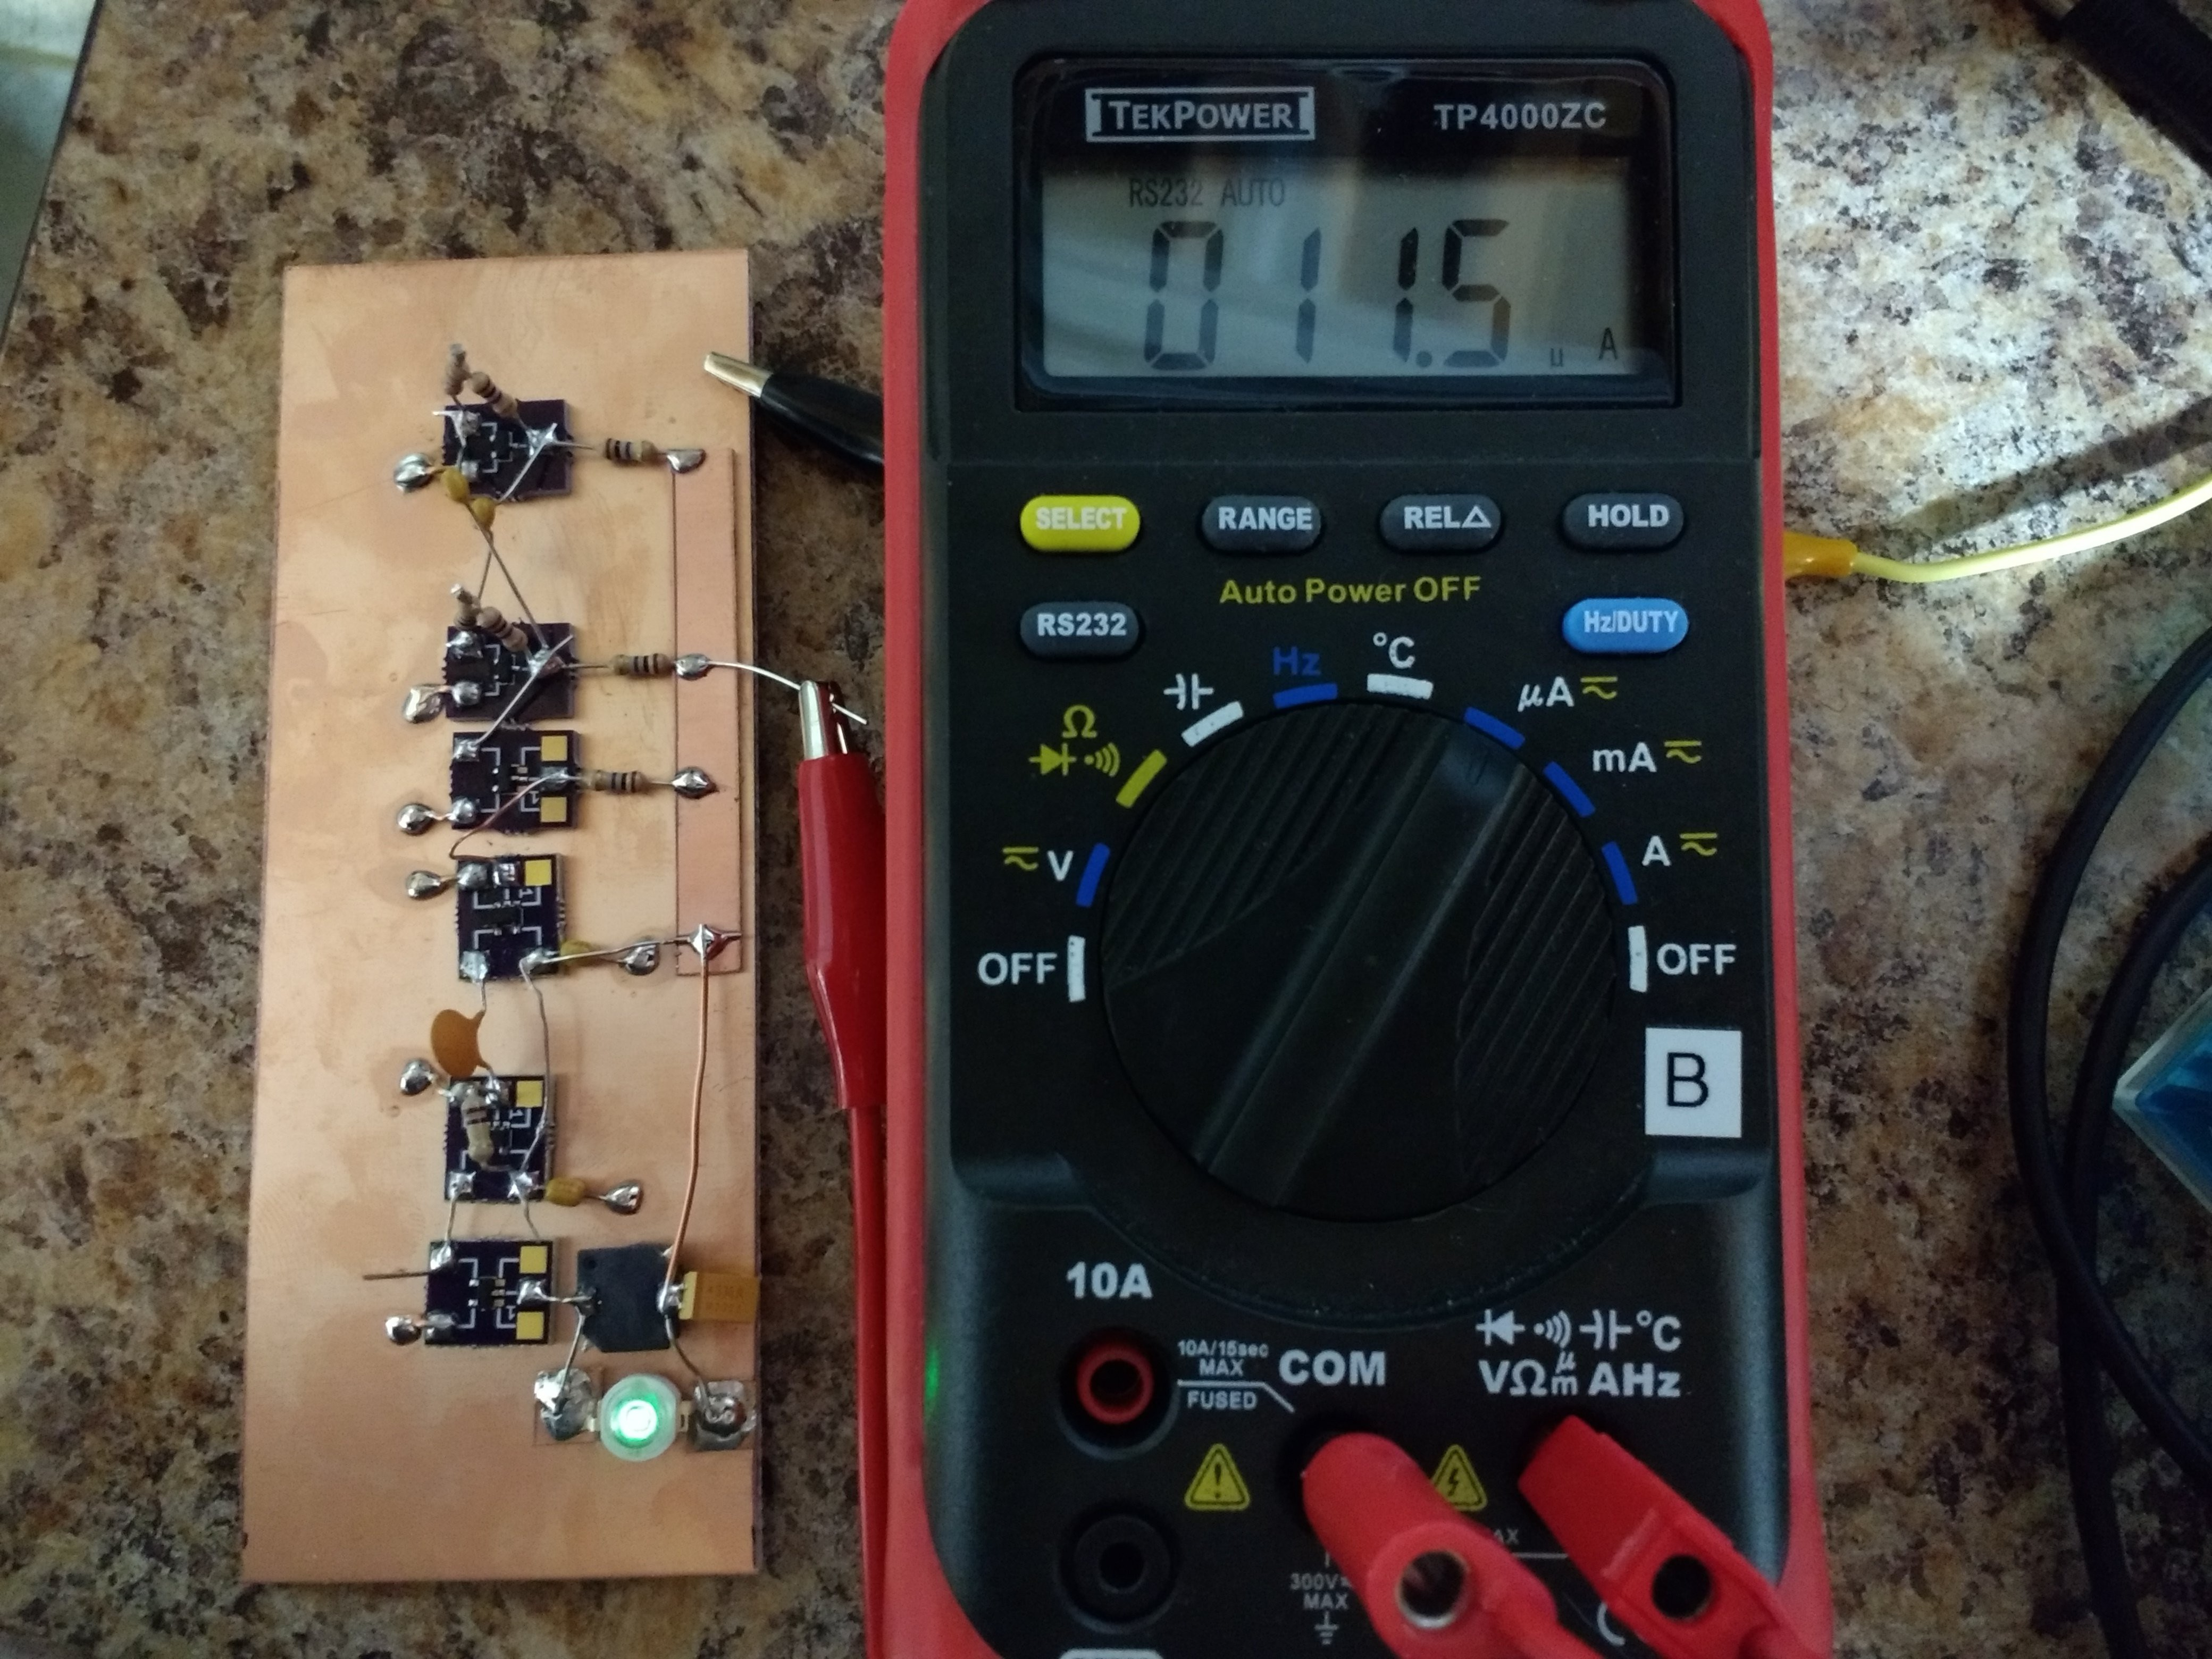 Tritiled 555 Timer Astable Multivibrator Circuit Technology Hacking The Is A Revised Version Of An Earlier Attempt I Made Using Schmitt Trigger Relaxation Oscillator Problem With Original Was